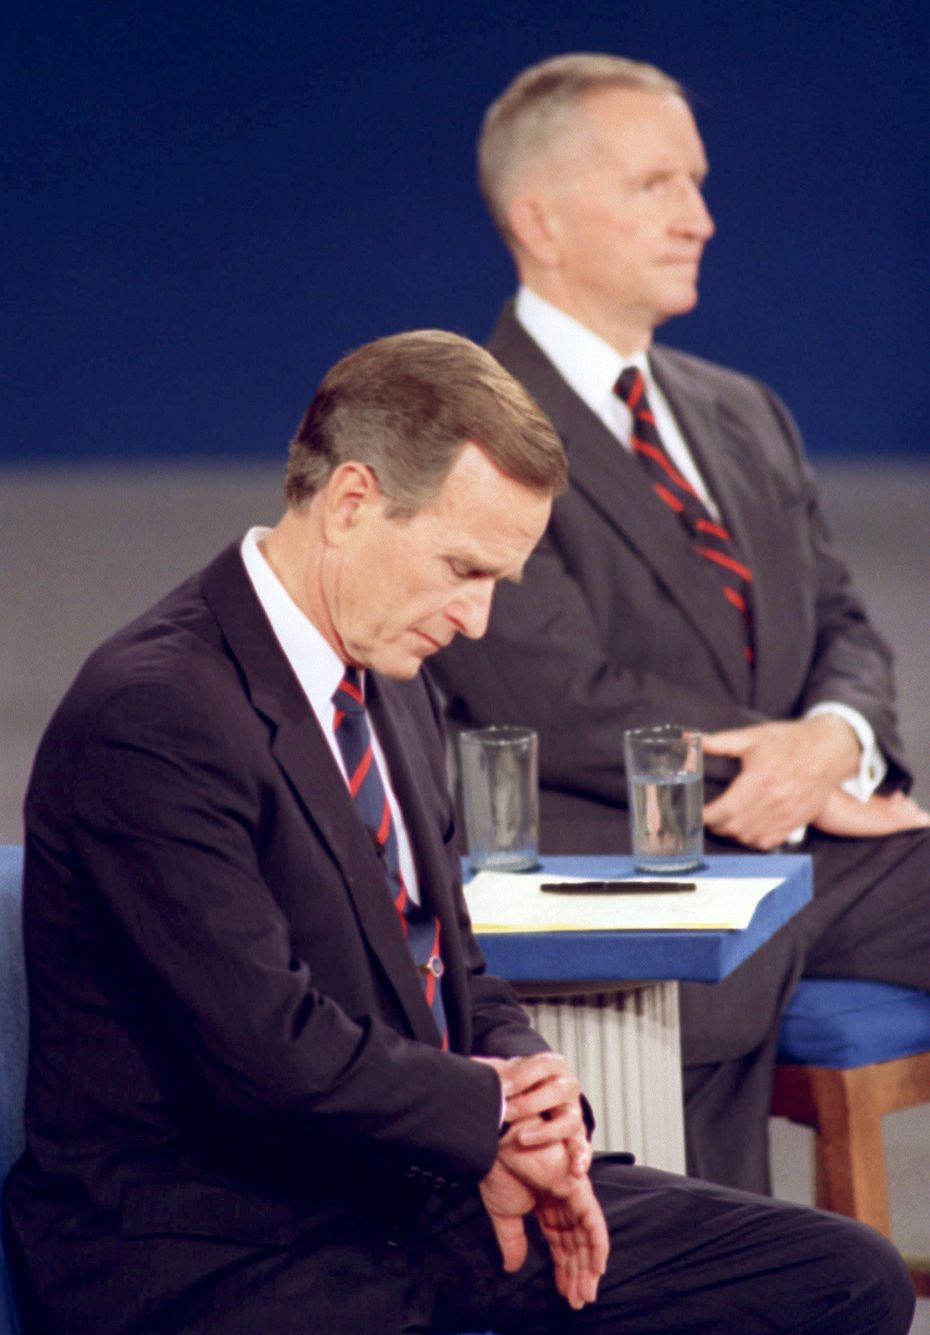 In a classic debate moment, President George H.W. Bush looks at his watch during a presidential debate at the University of Richmond in October 1992. Independent candidate Ross Perot is at right. Bush later lost the election to Bill Clinton.